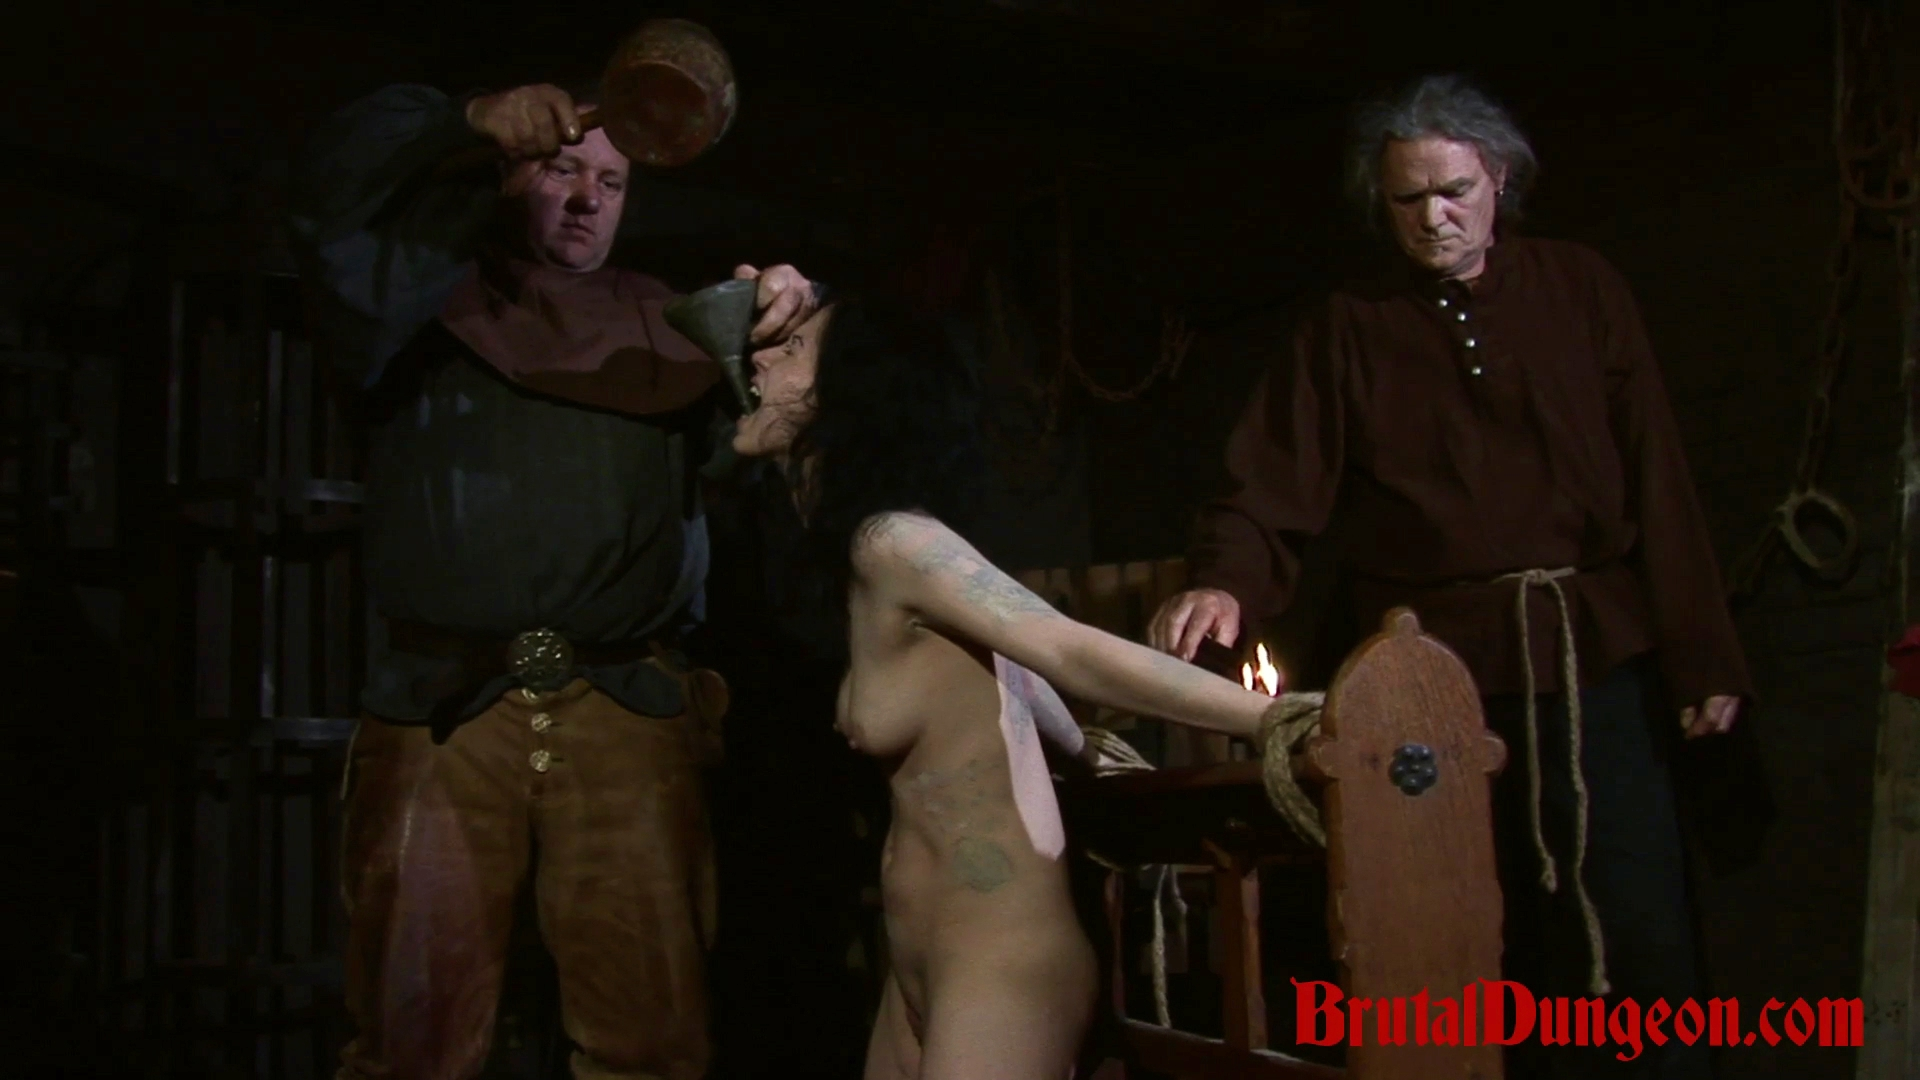 Brunette loredana imprisoned for bdsm gangbang. Brunette whore Loredana has been arrested and punished in our dungeon. She's left without water and begs for only a cup. She will do anything to earn it, even endure imprisonment, rope bondage, domination, BDSM fun, gang bang, candle and wax play, spanking, slapping, flogging, fingering, tit, nipple and cunt torment.